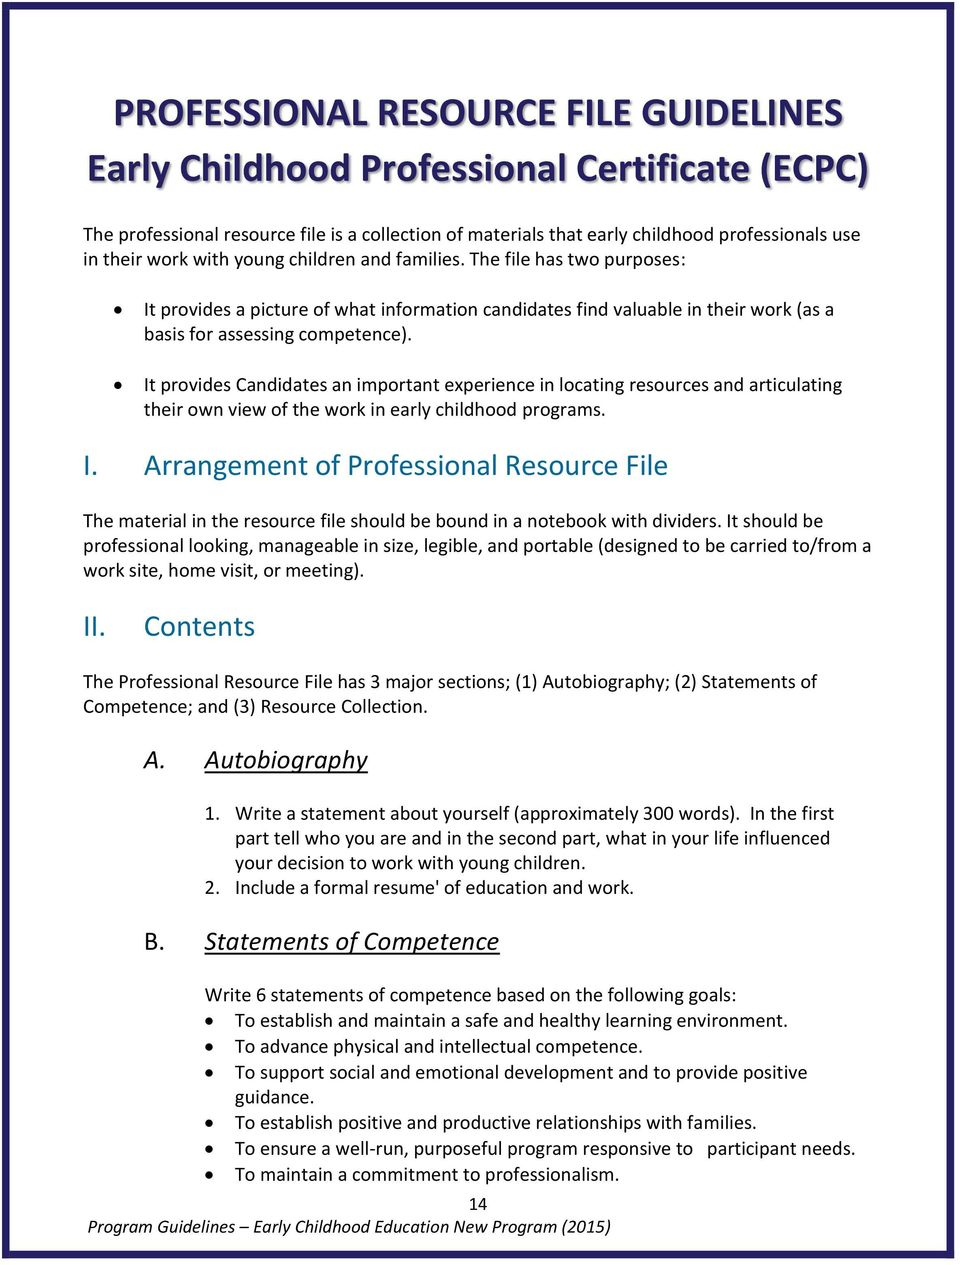 It provides Candidates an important experience in locating resources and articulating their own view of the work in early childhood programs. I.